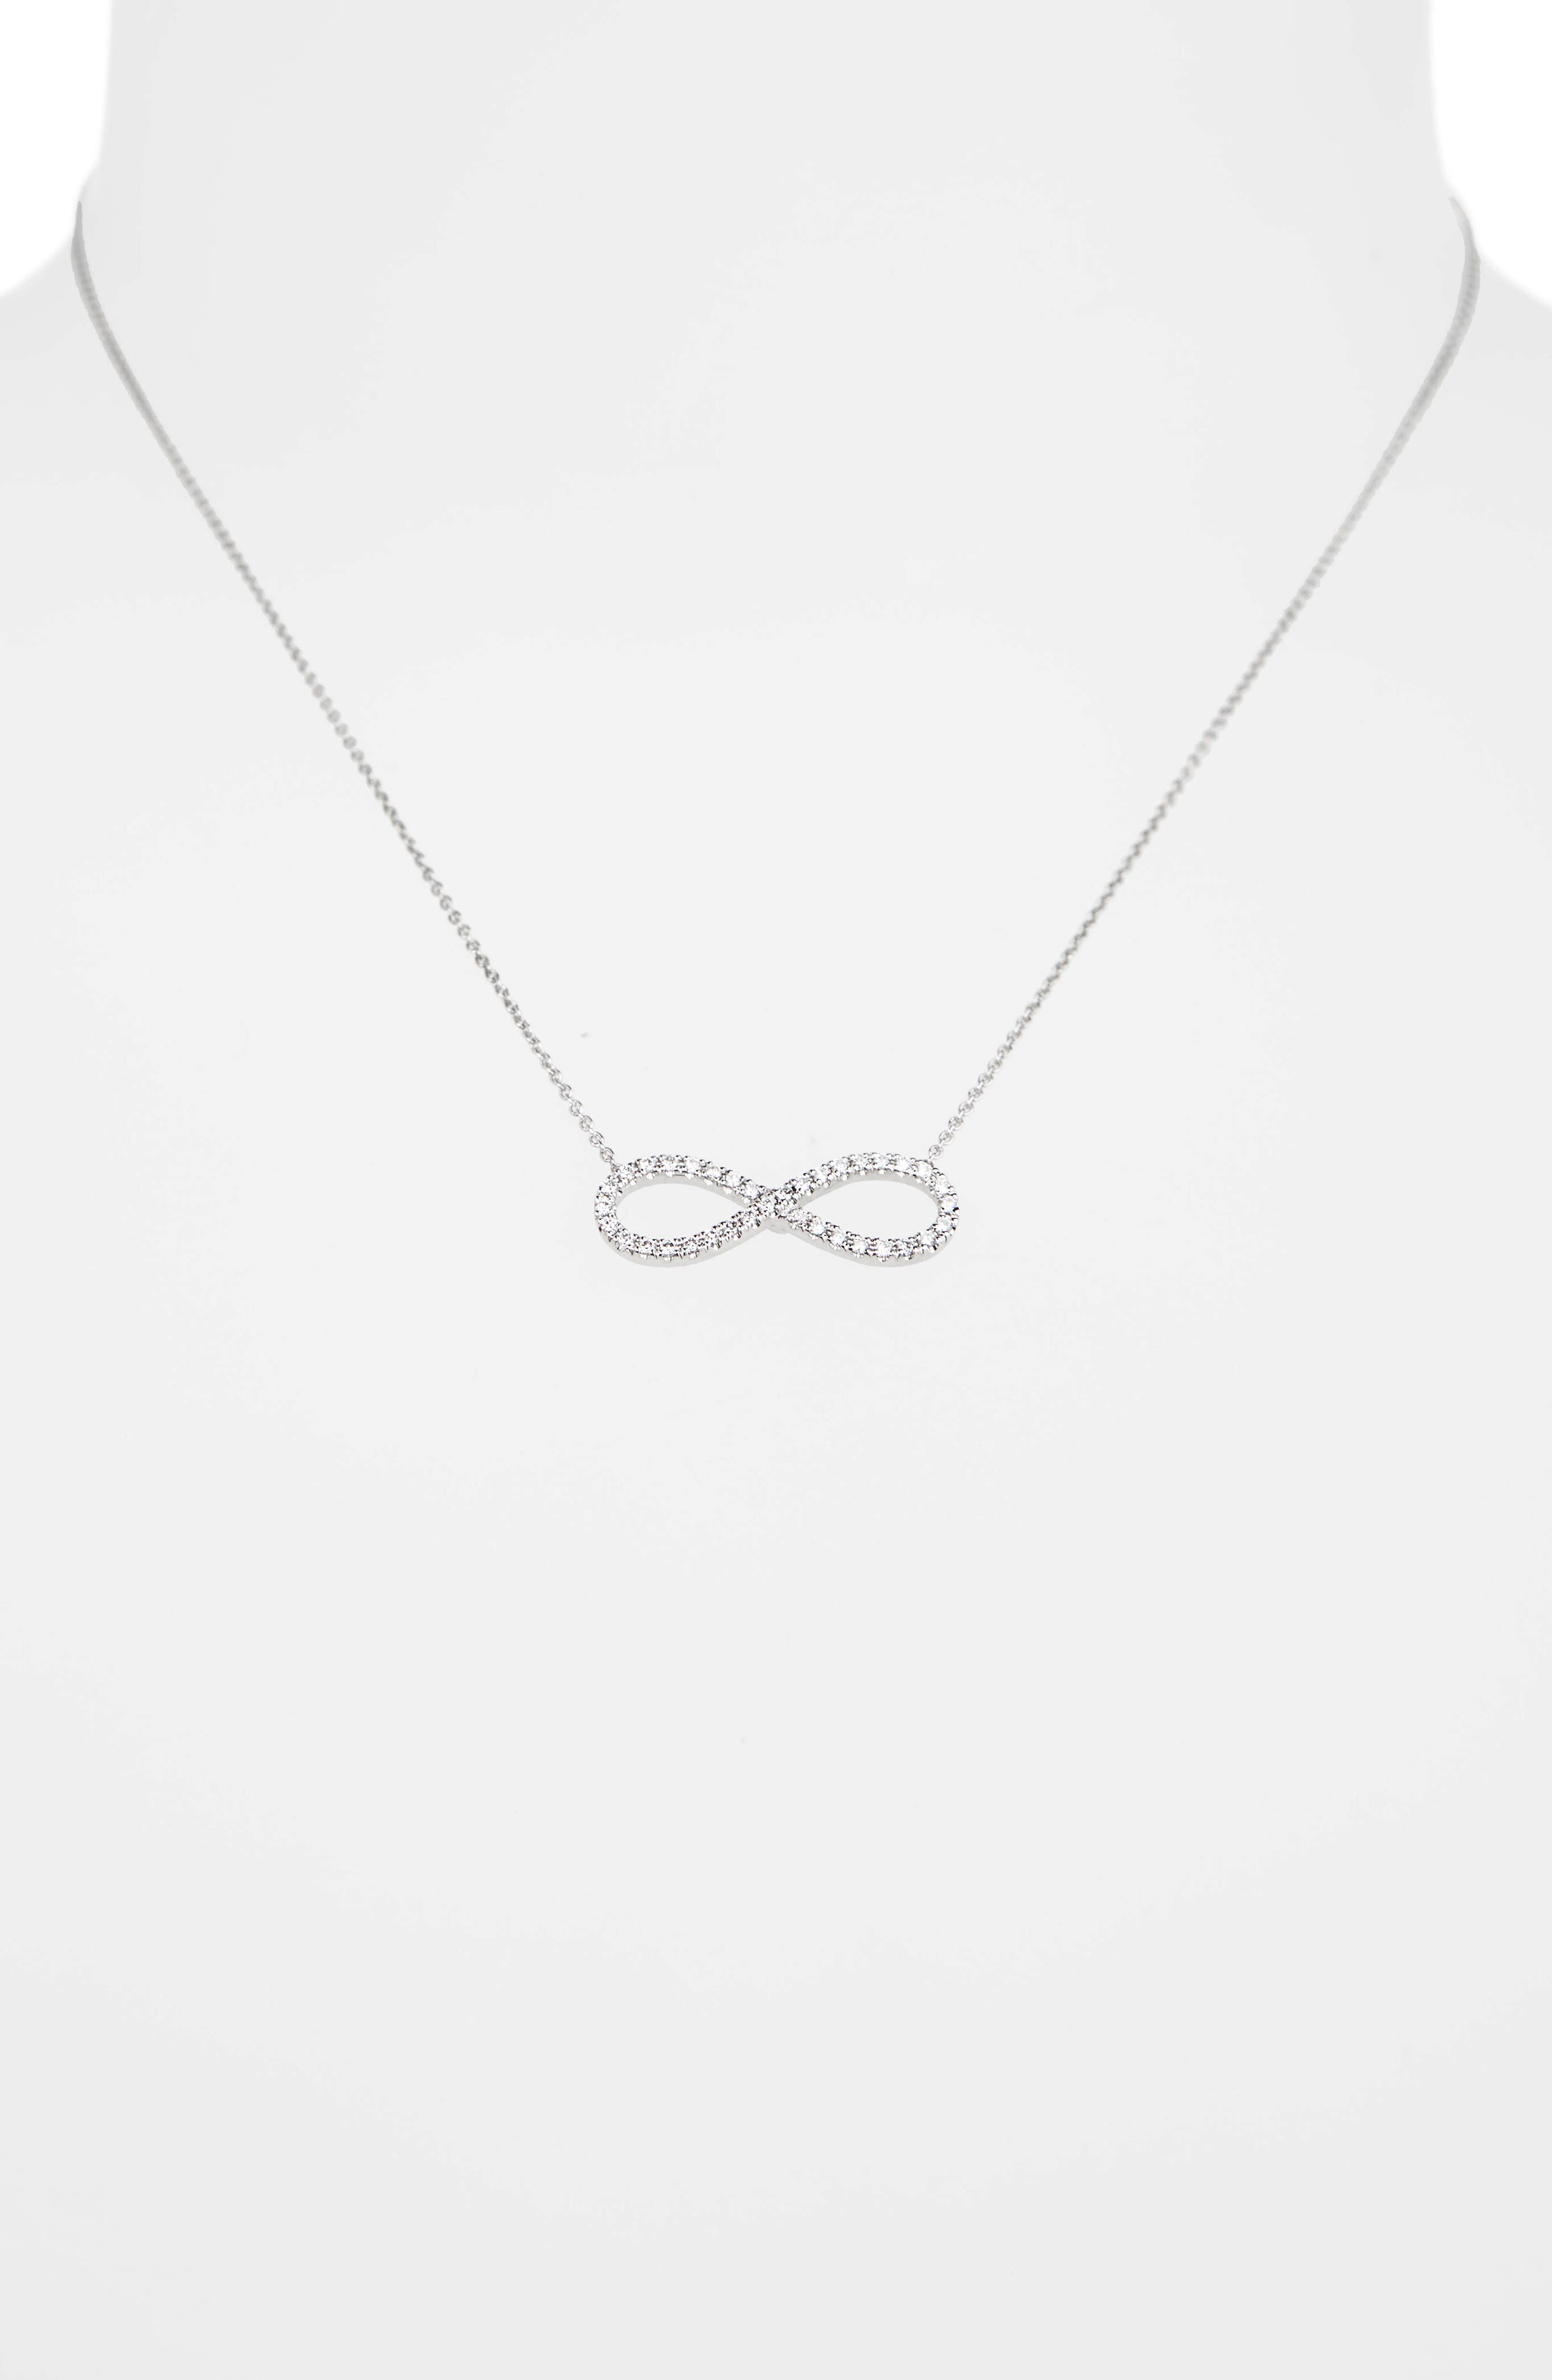 Robert Coin Diamond Infinity Pendant Necklace,                             Alternate thumbnail 2, color,                             WHITE GOLD